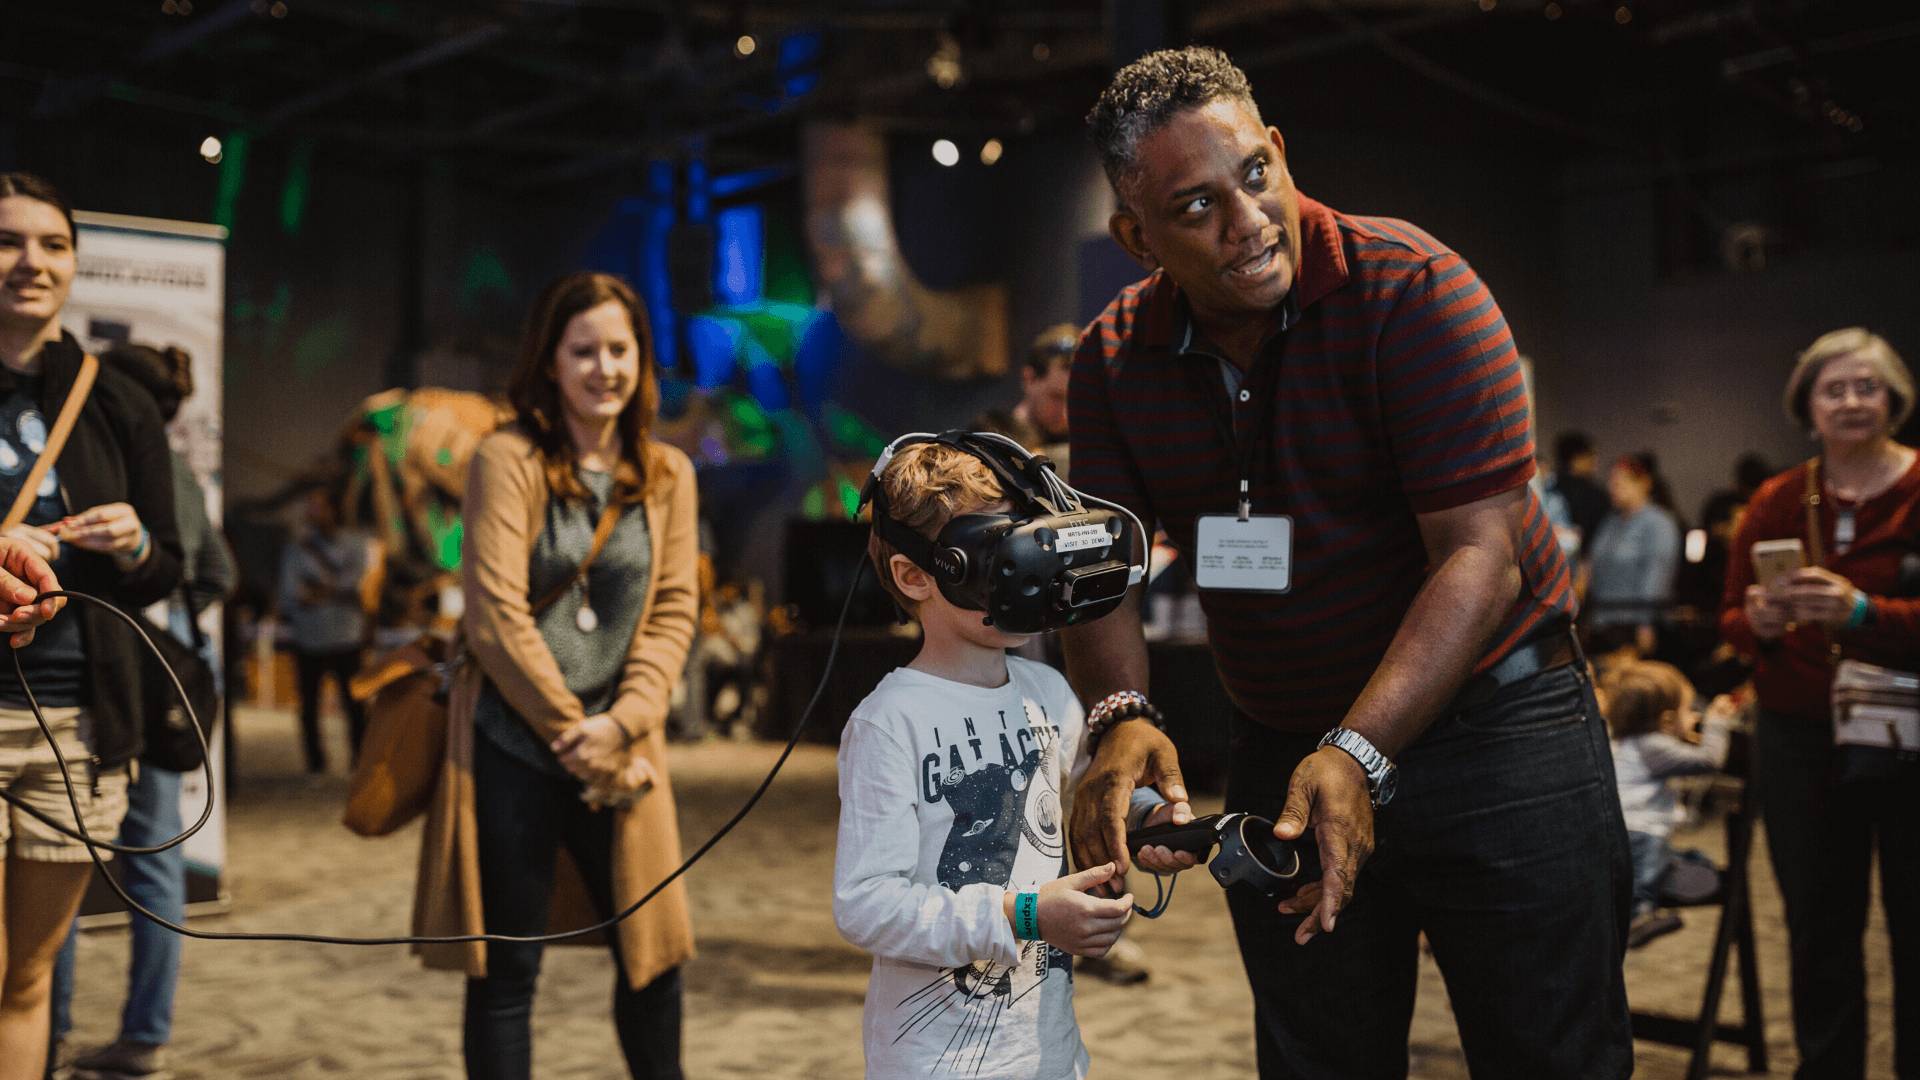 Otronicon attendees using virtual reality